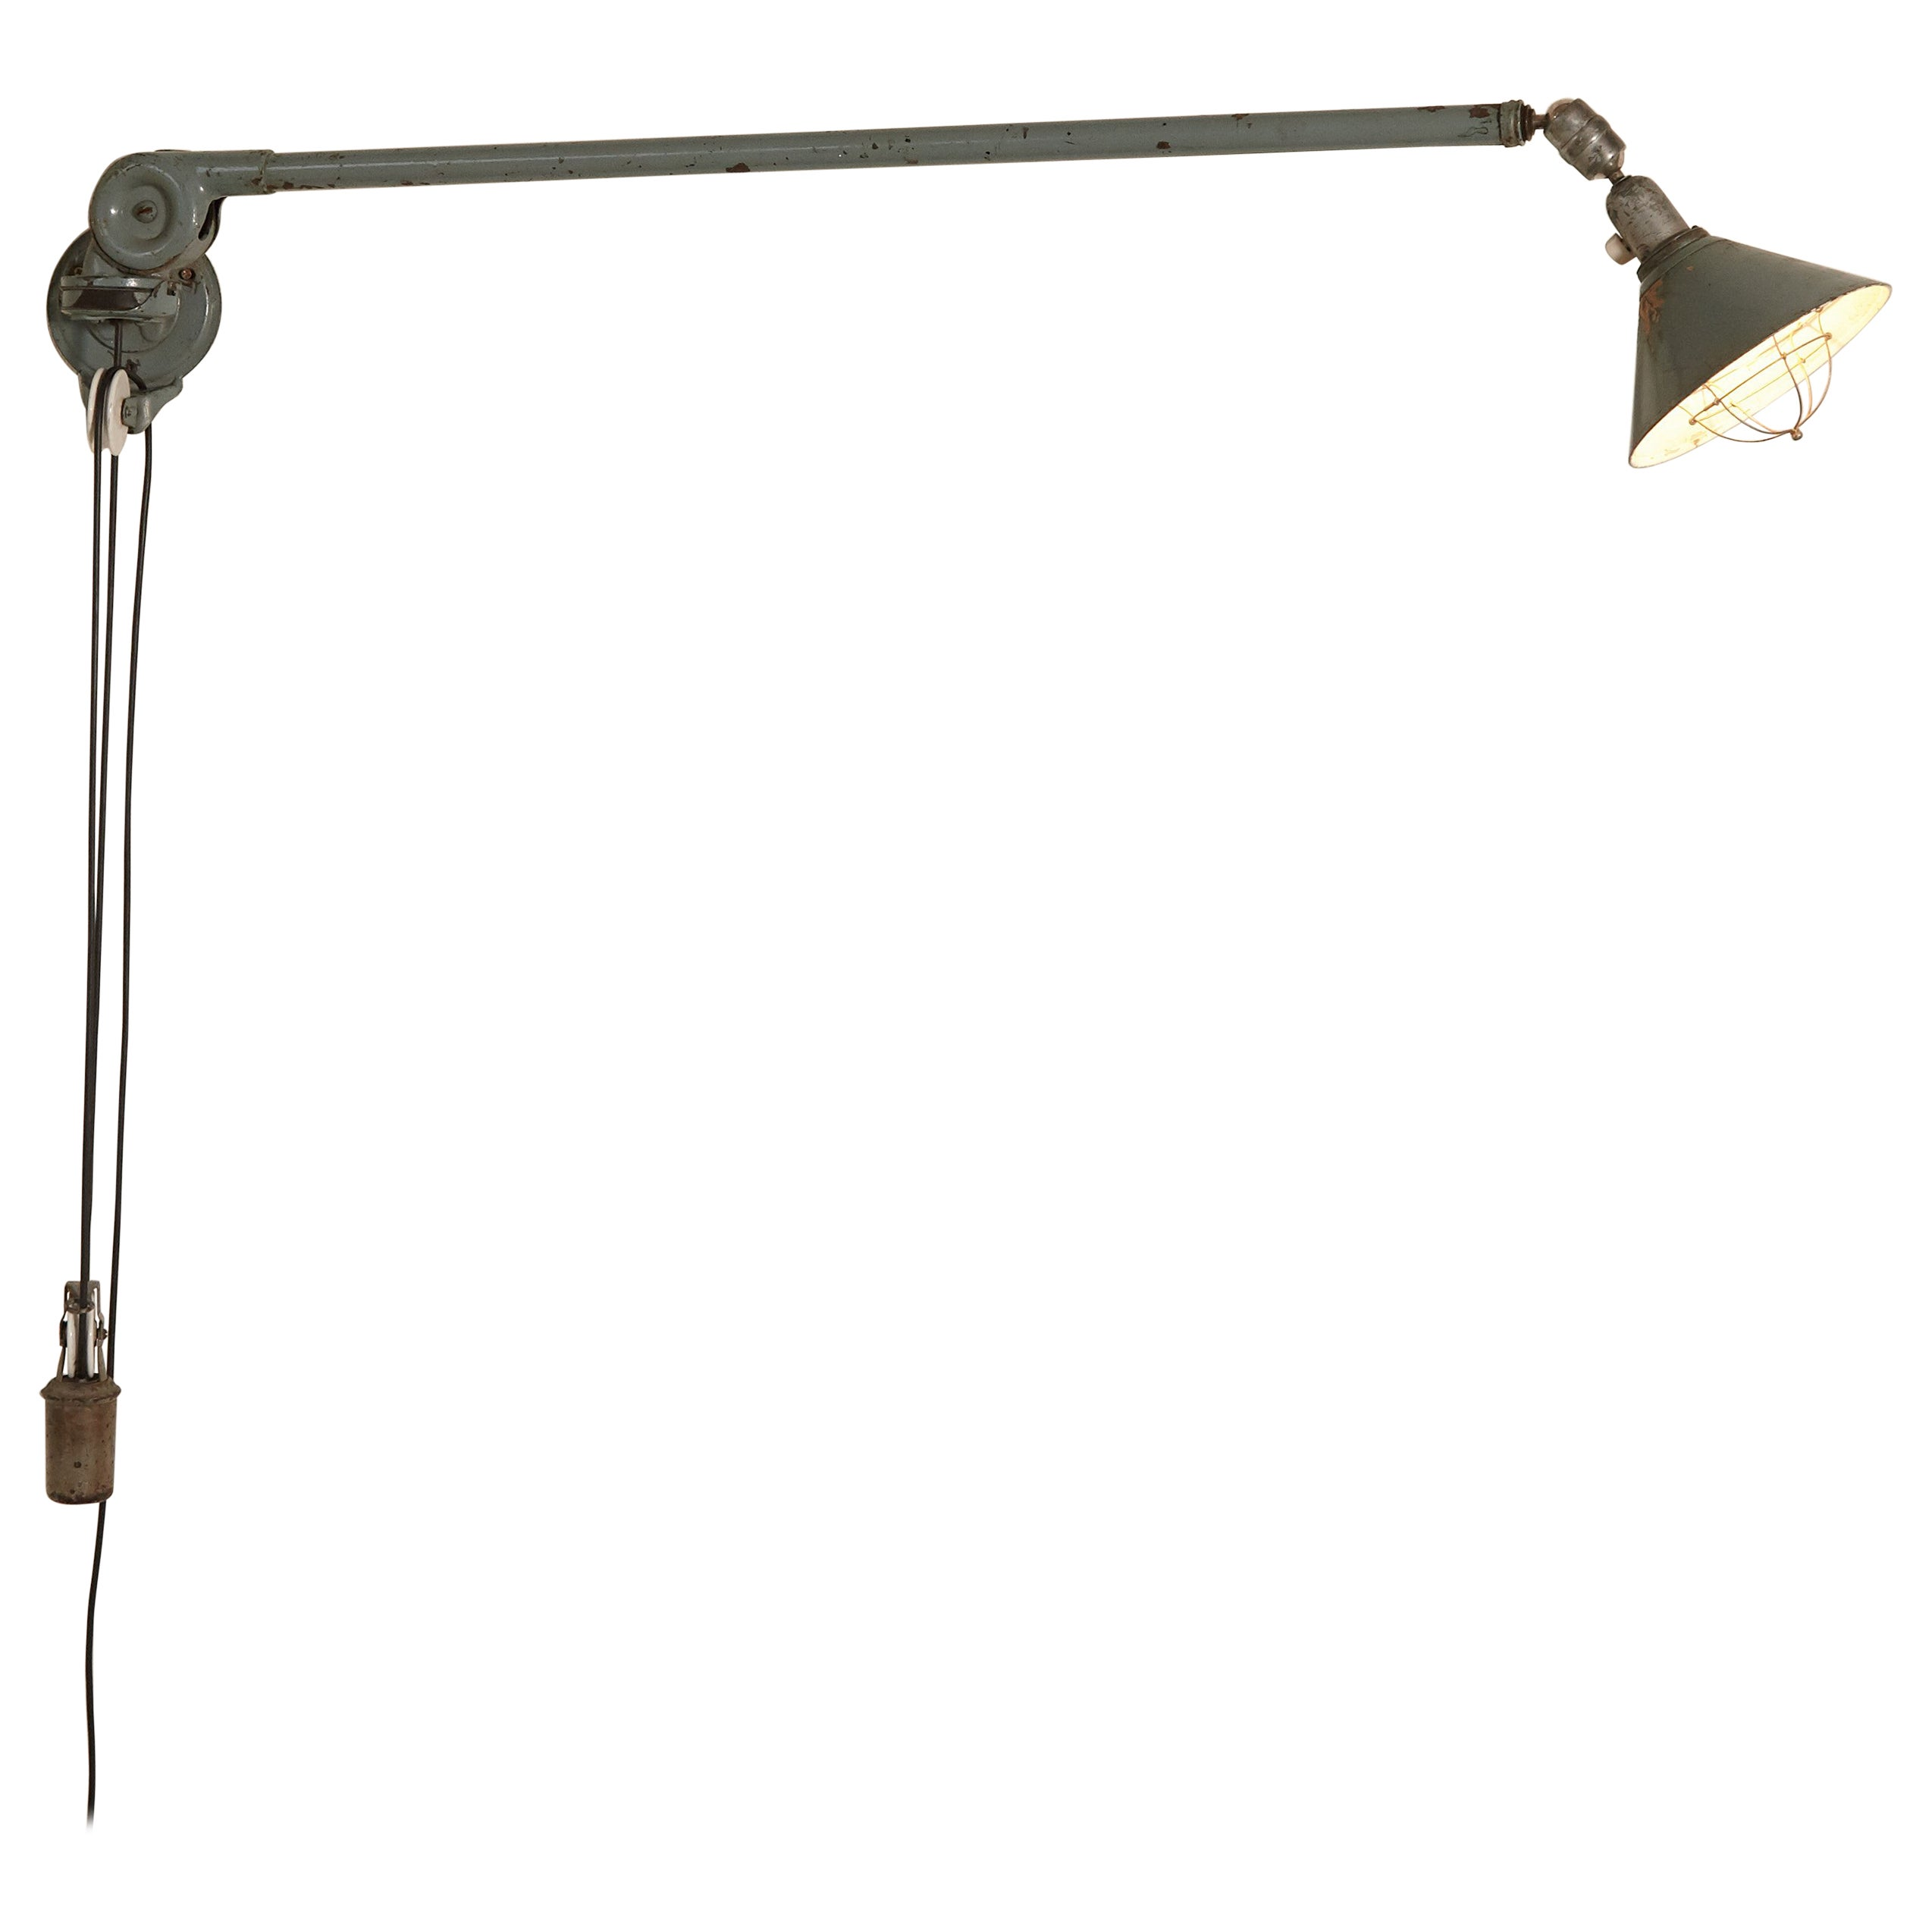 Early Johan Petter Johansson Industrial Triplex Telescopic Lamp, Sweden, 1910s